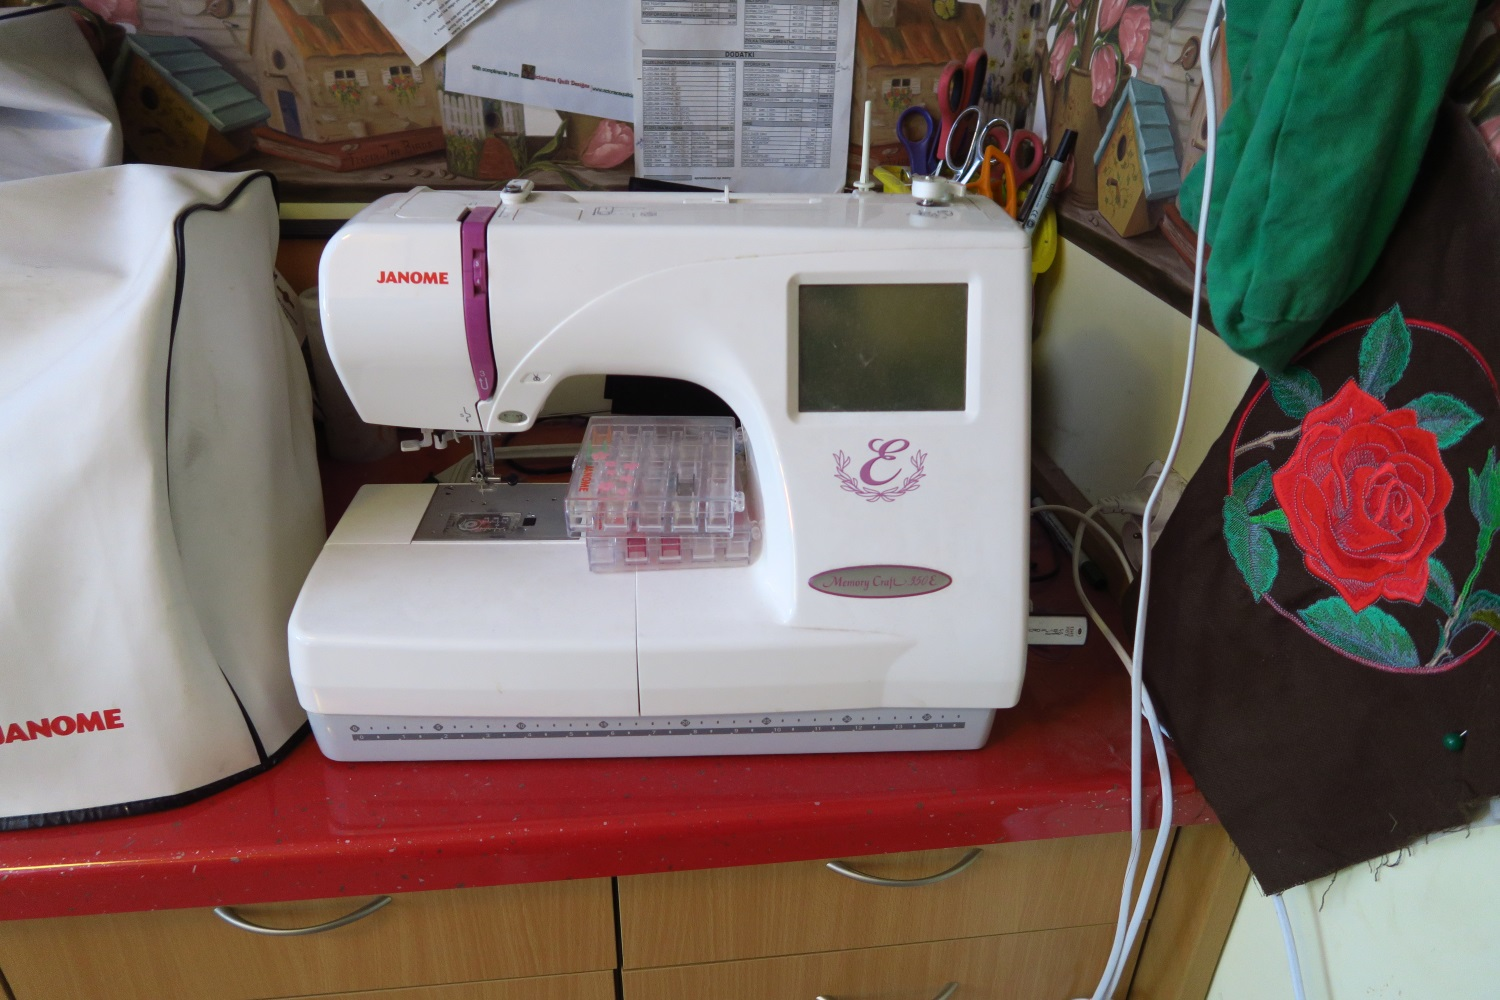 Janome 350E my first embroidery machine